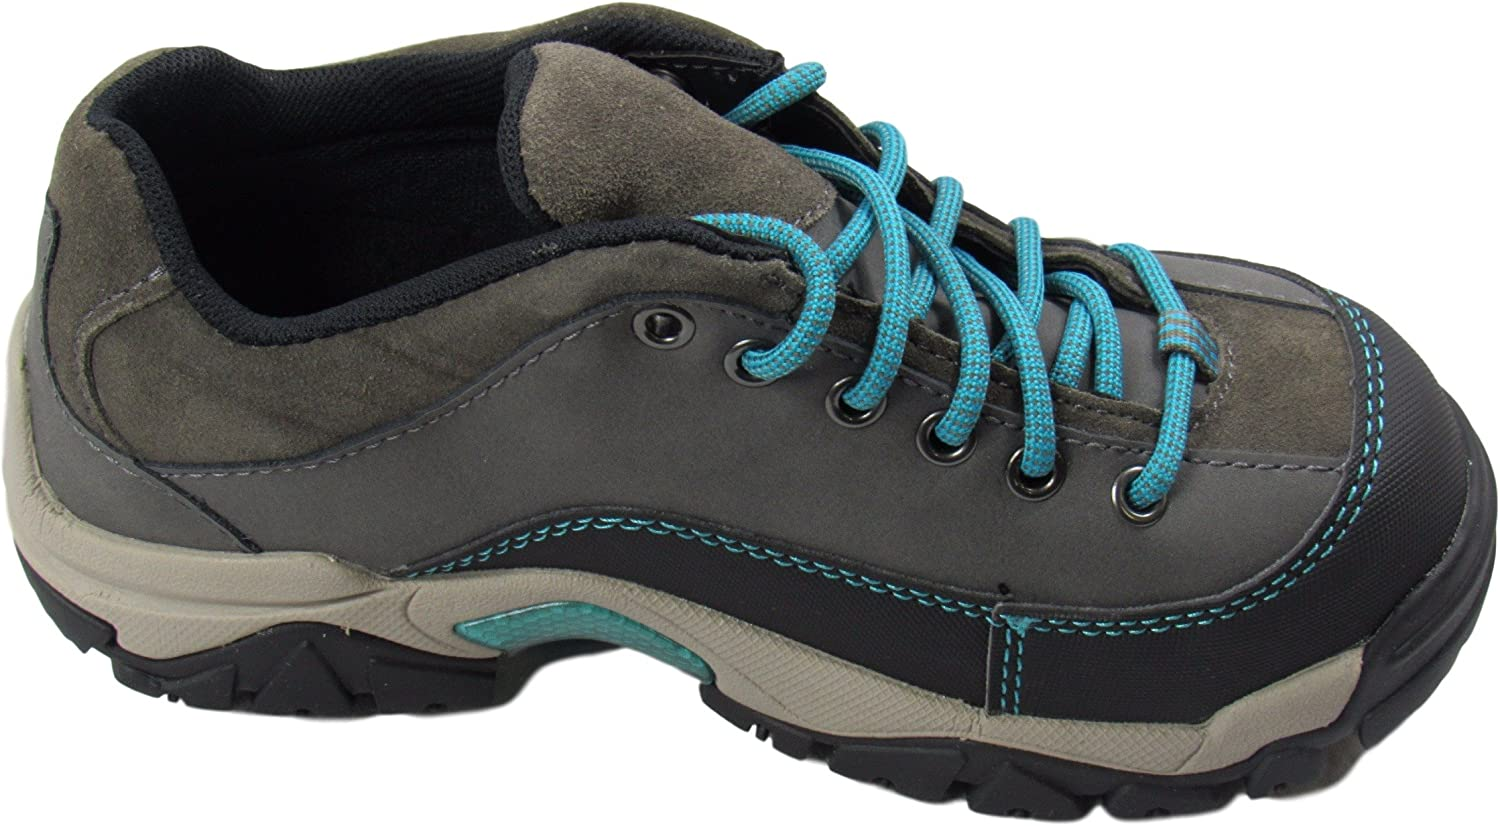 Wolverine Hytest K17003 Apex Oxford Complete Free Shipping New life Toe Electrical Hazard Steel